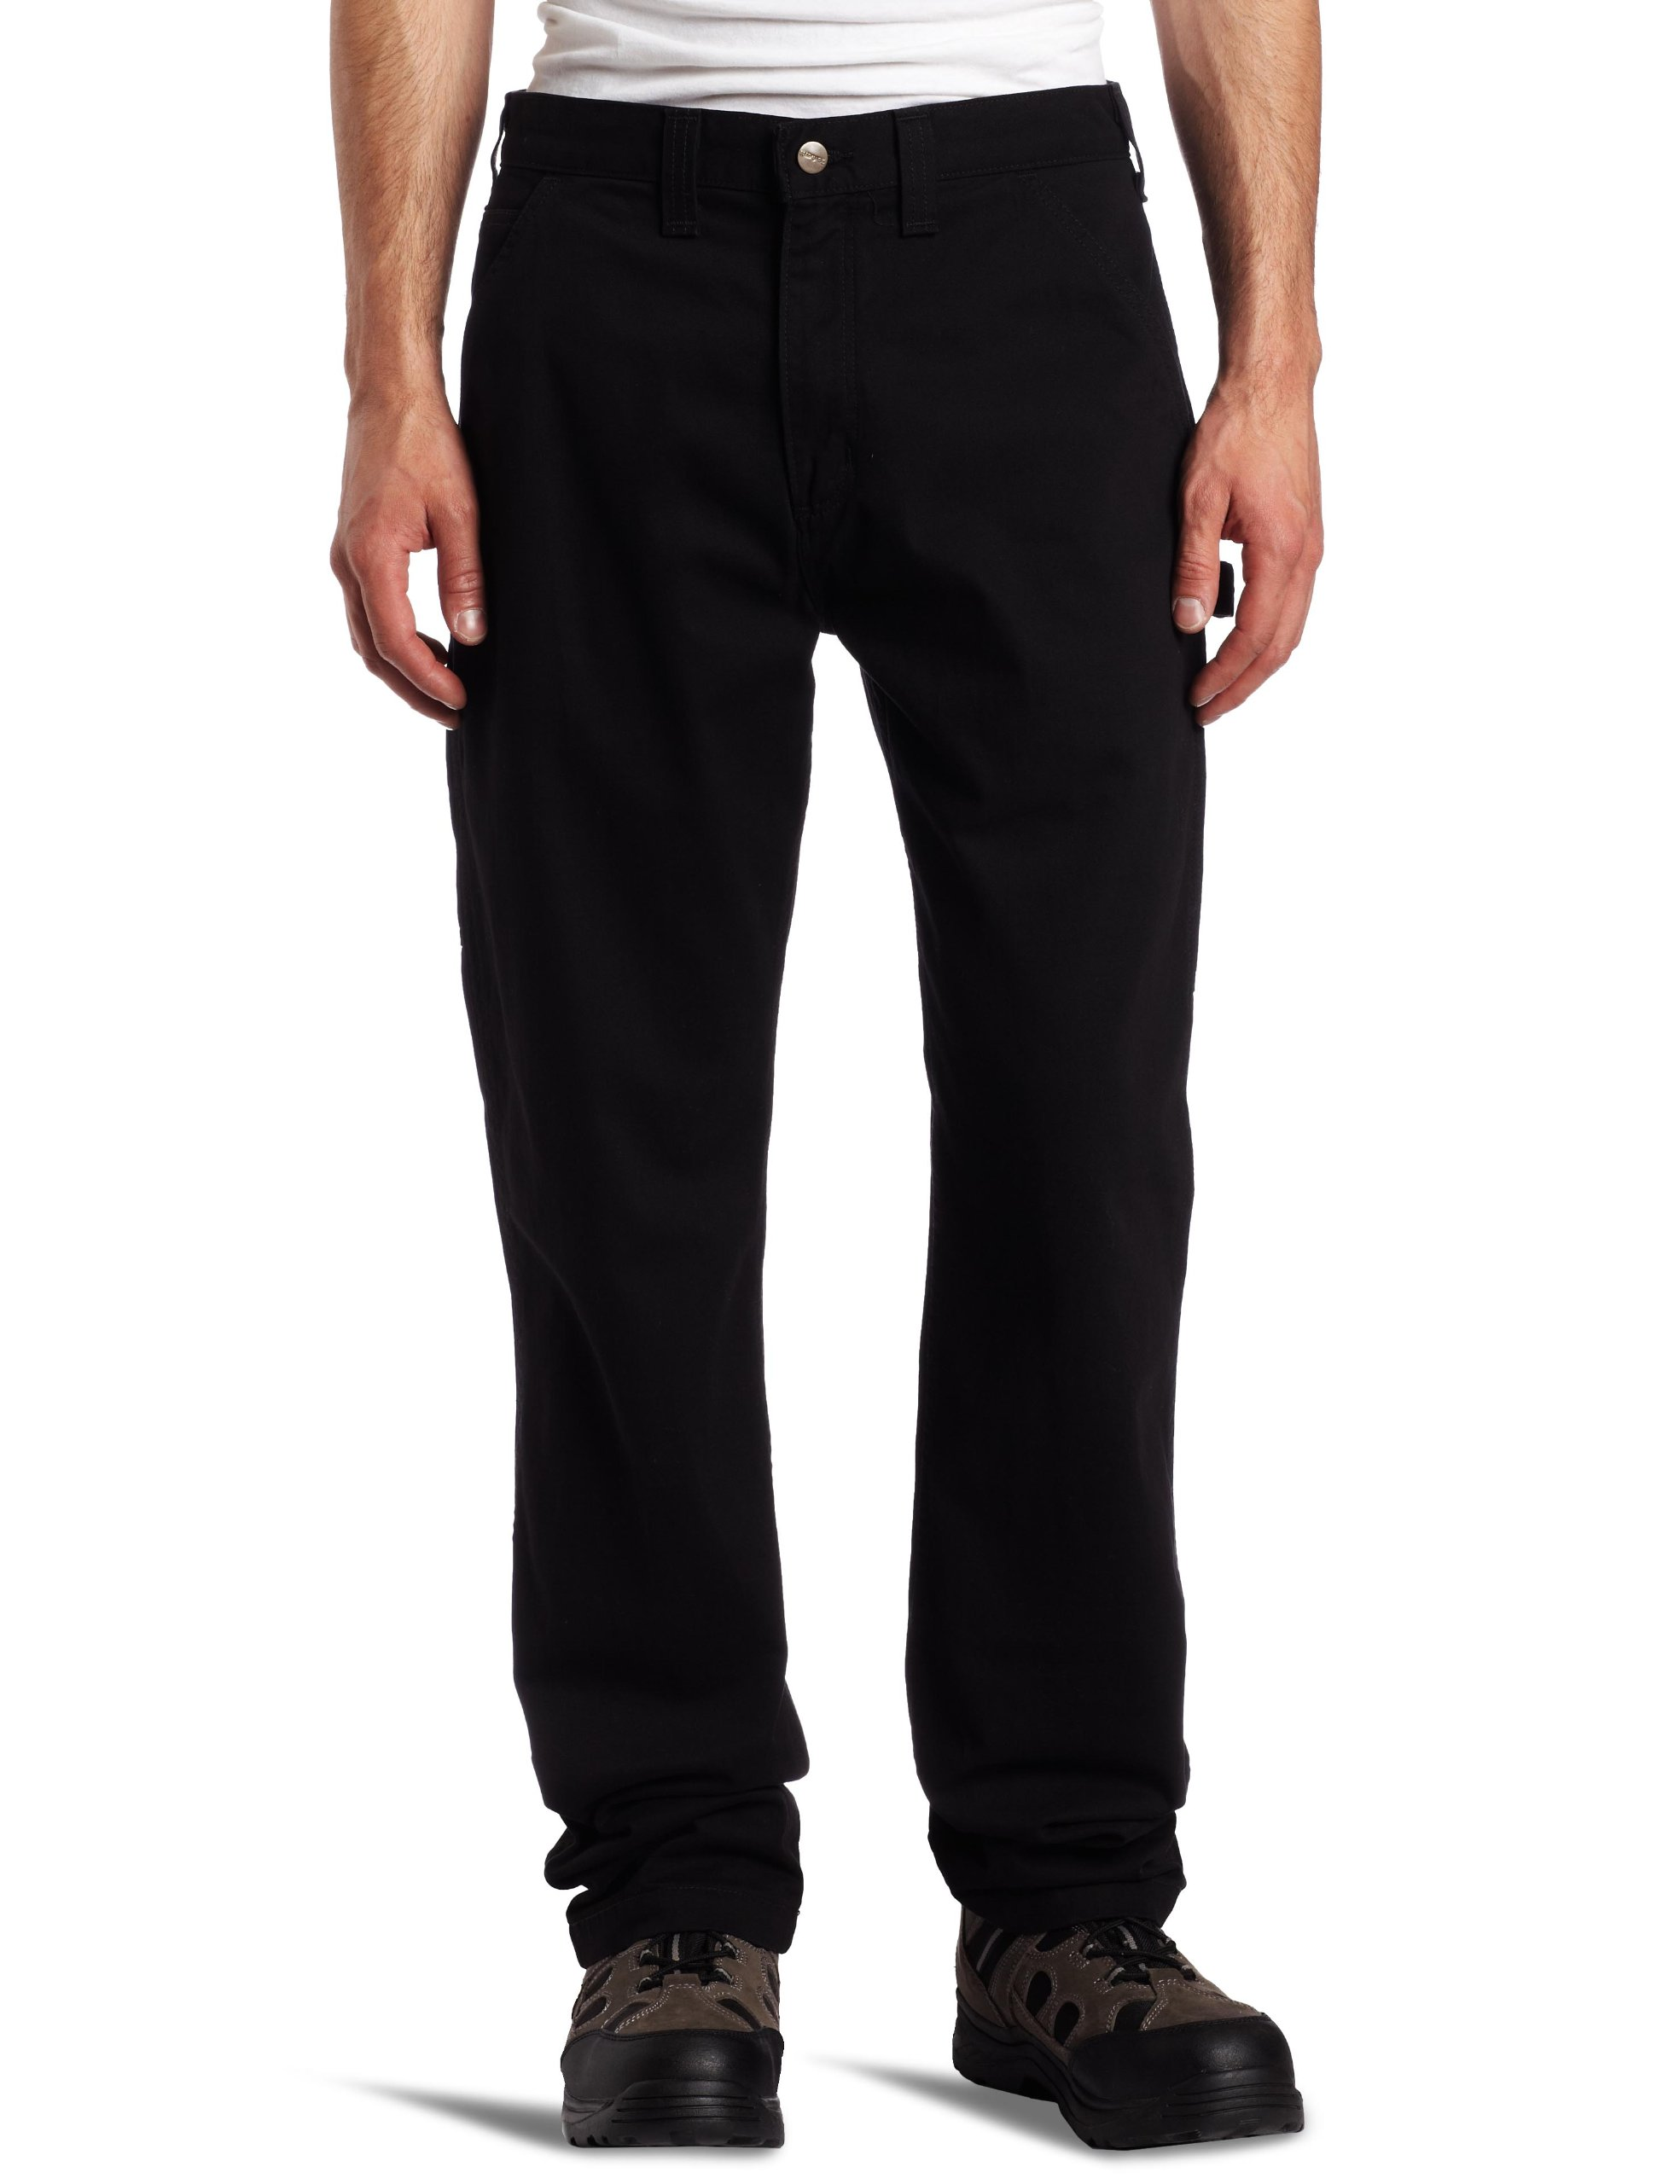 Carhartt Men's Washed Twill Dungaree Relaxed Fit,Black,42 x 32